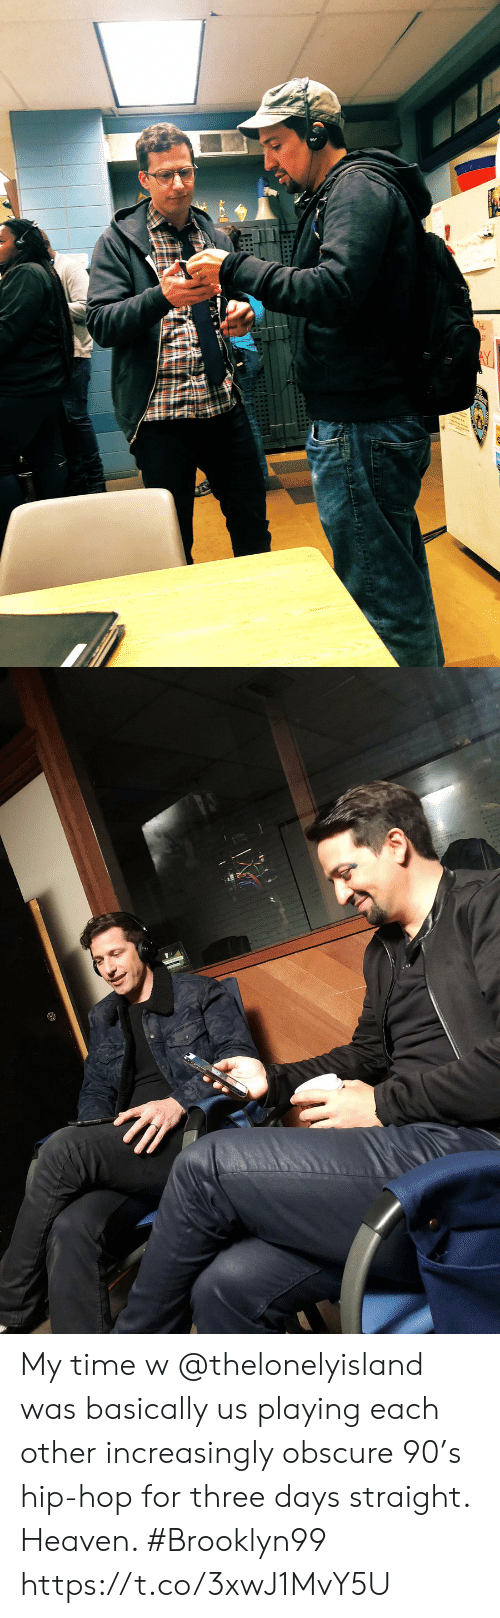 Increasingly: My time w @thelonelyisland was basically us playing each other increasingly obscure 90's hip-hop for three days straight. Heaven. #Brooklyn99 https://t.co/3xwJ1MvY5U